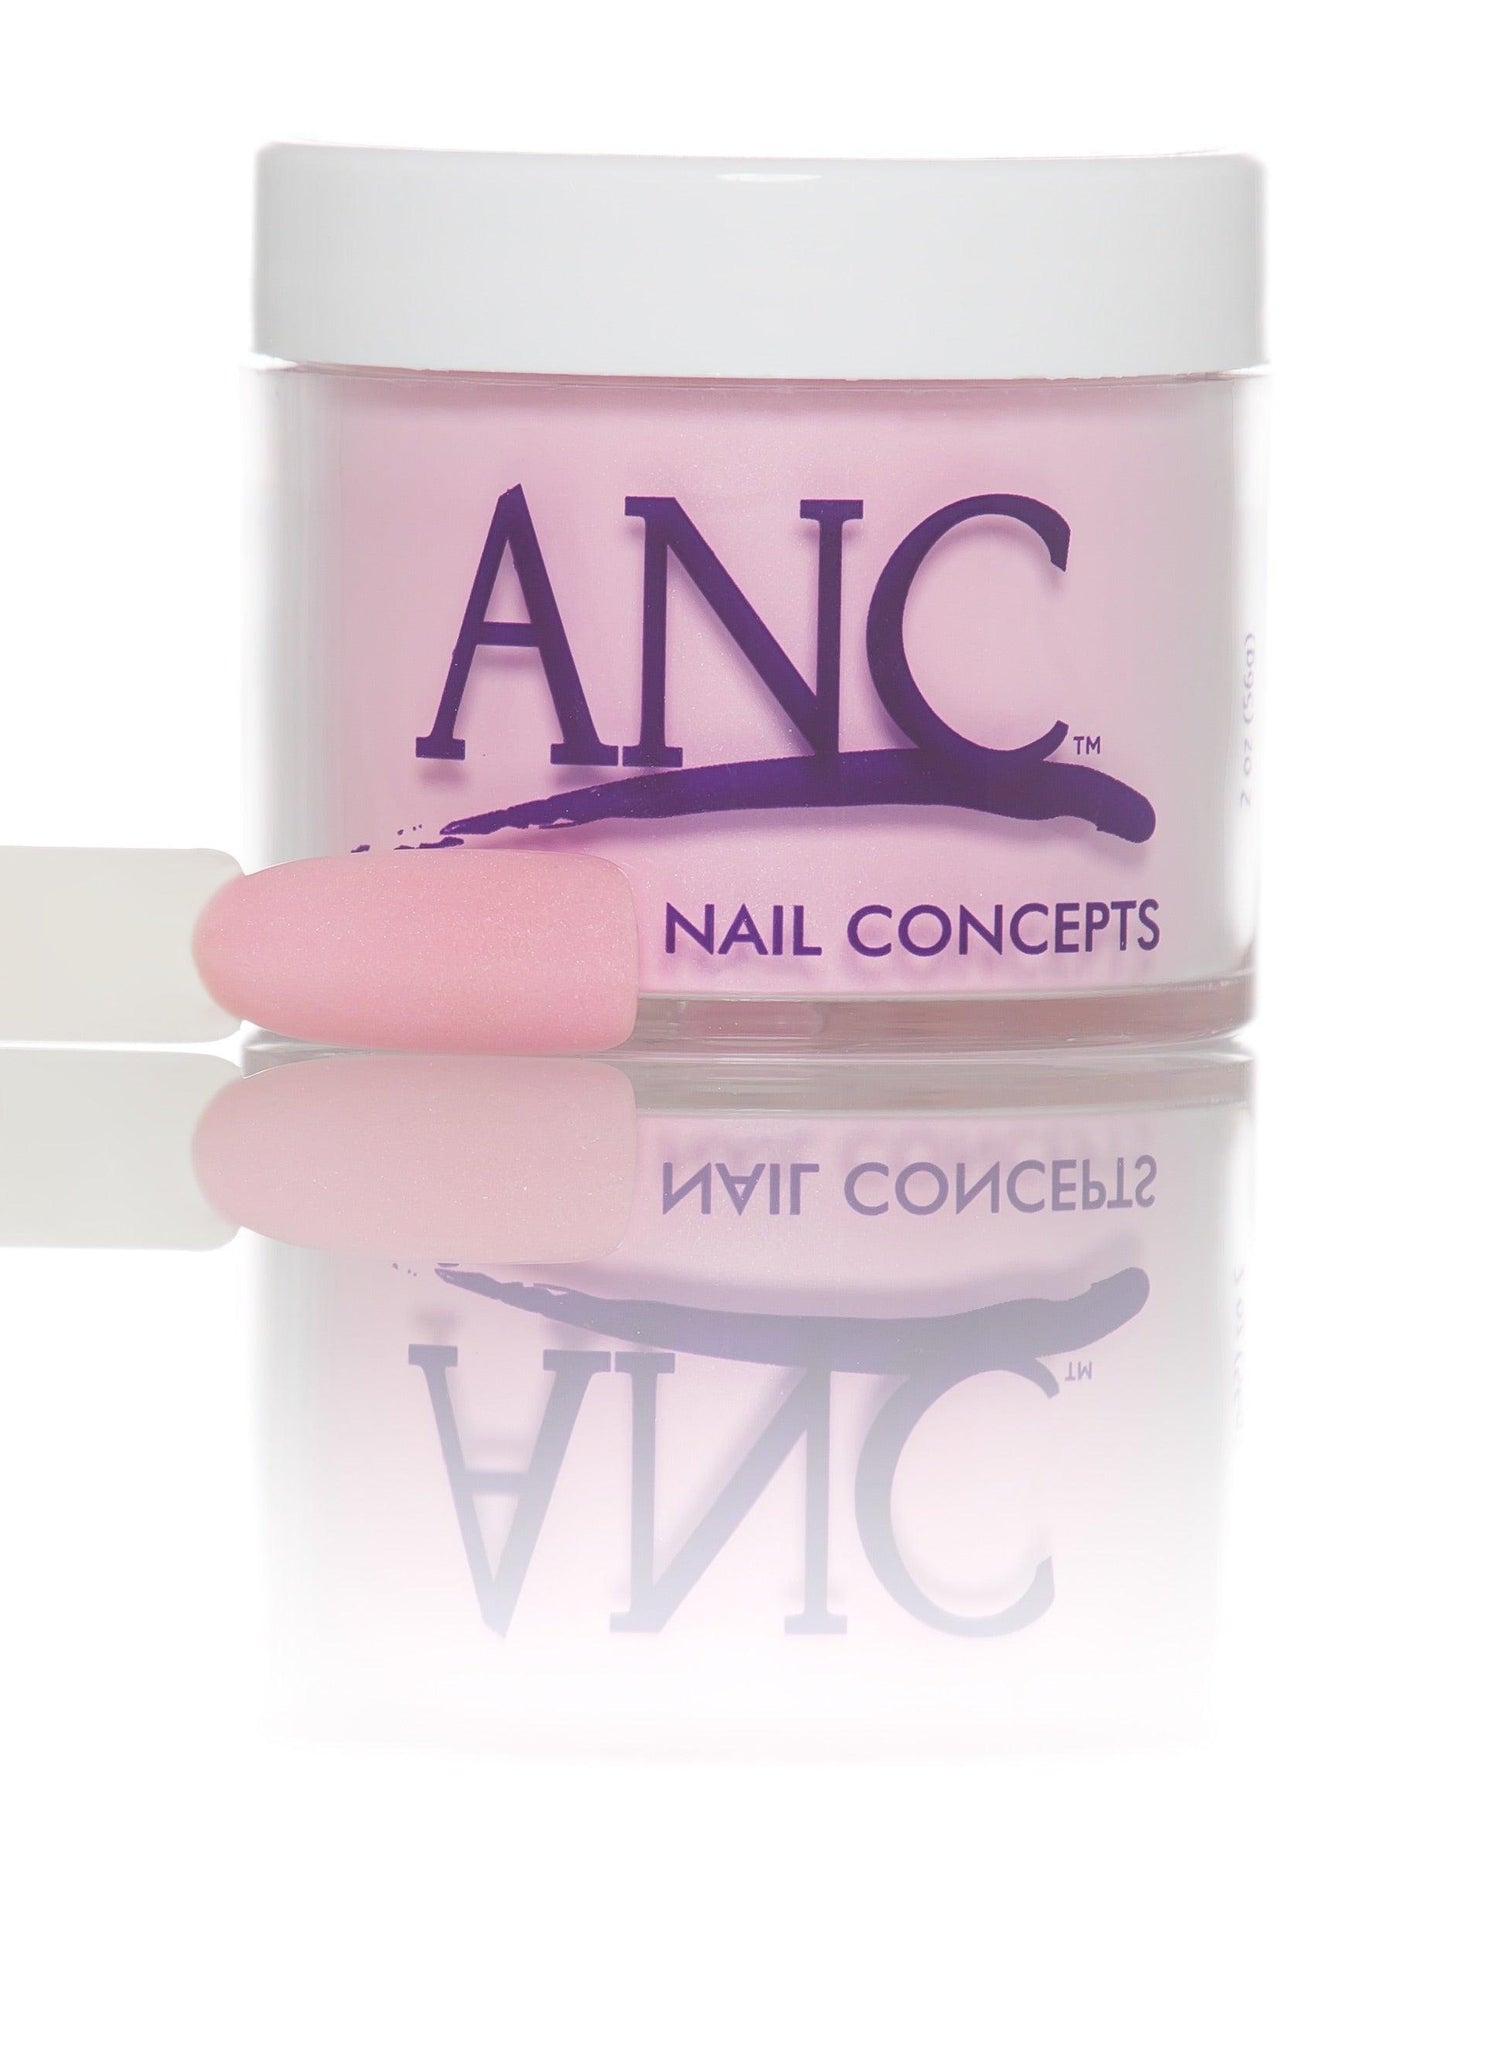 South Beach Pink - 119 - Amazing Nail Concept Dip Powder